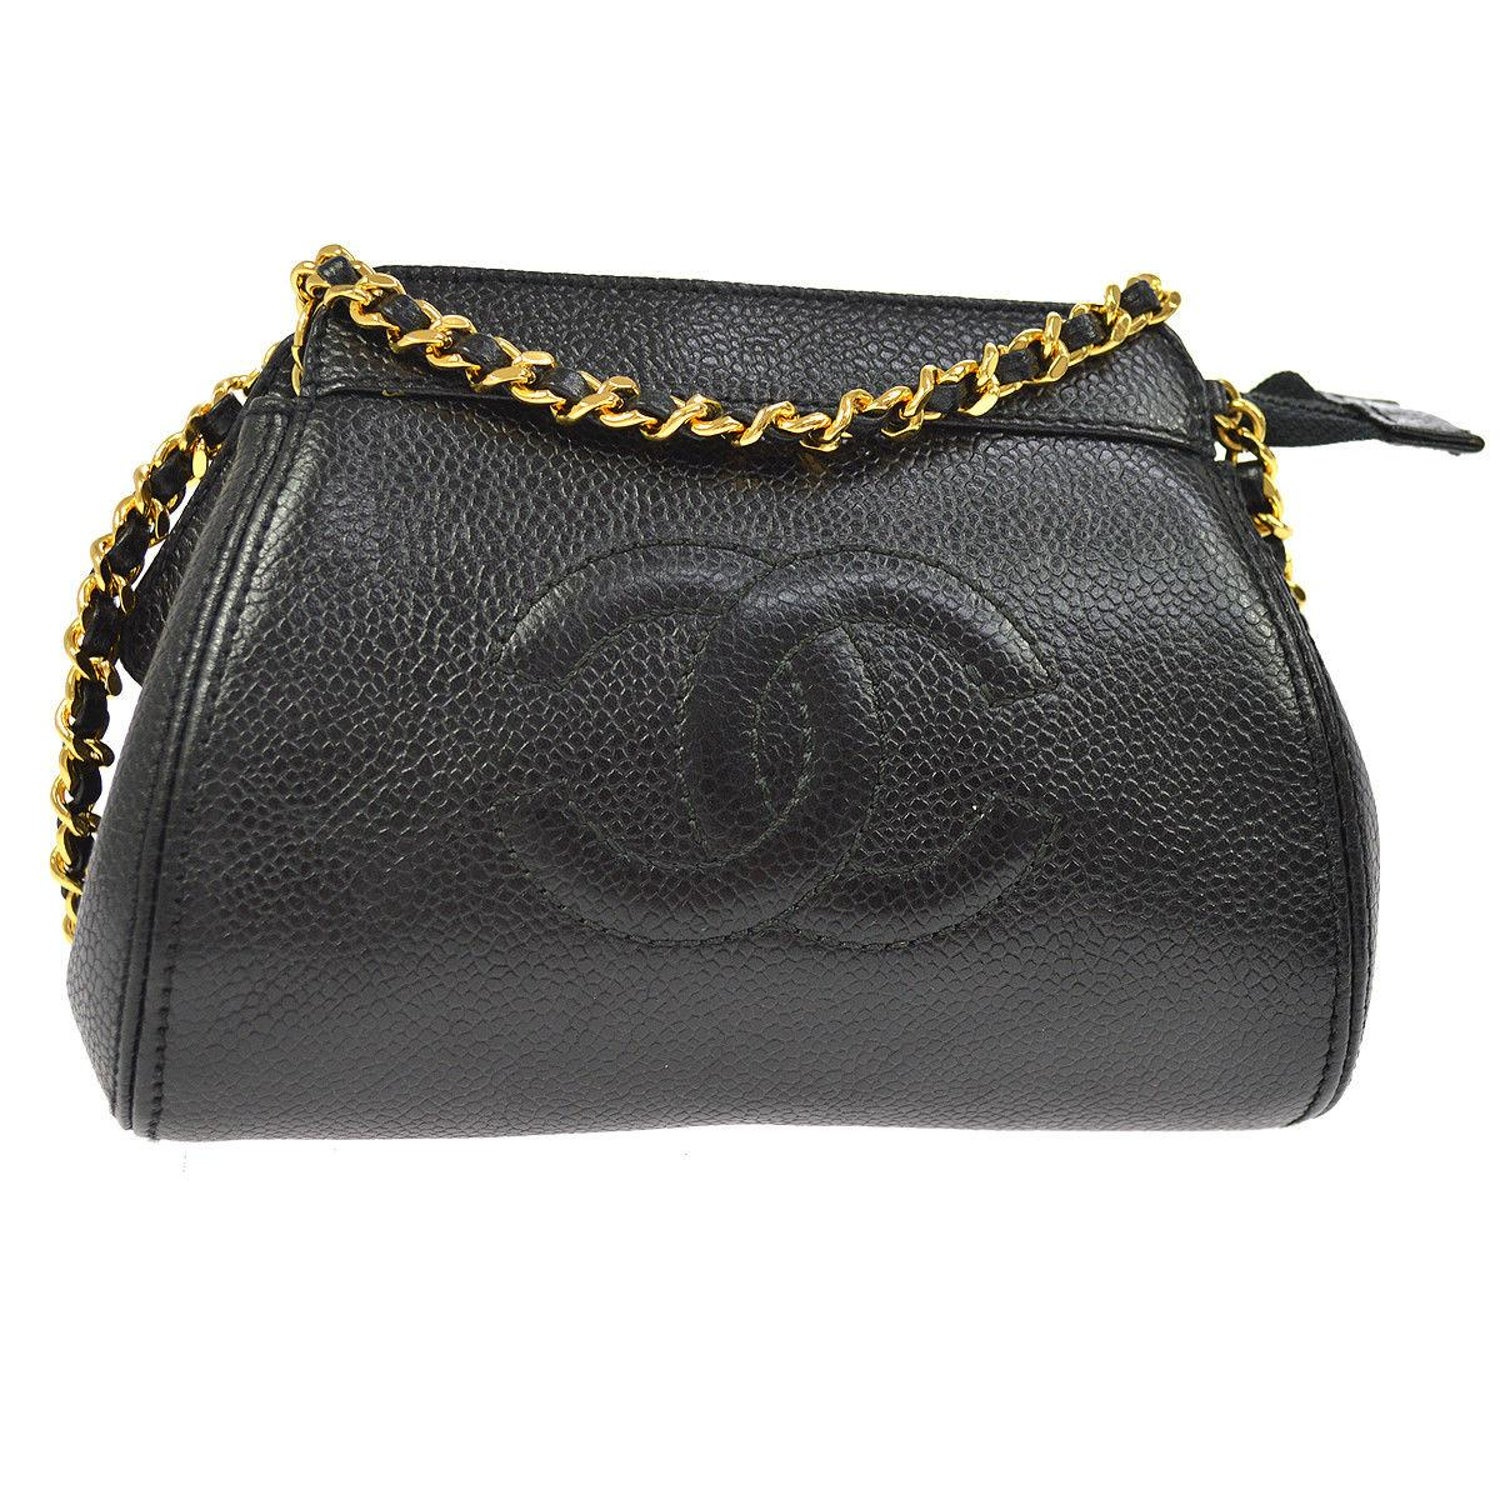 22850051e5825d Chanel Black Caviar Leather Gold Mini 2 in 1 Clutch Party Shoulder Bag For  Sale at 1stdibs